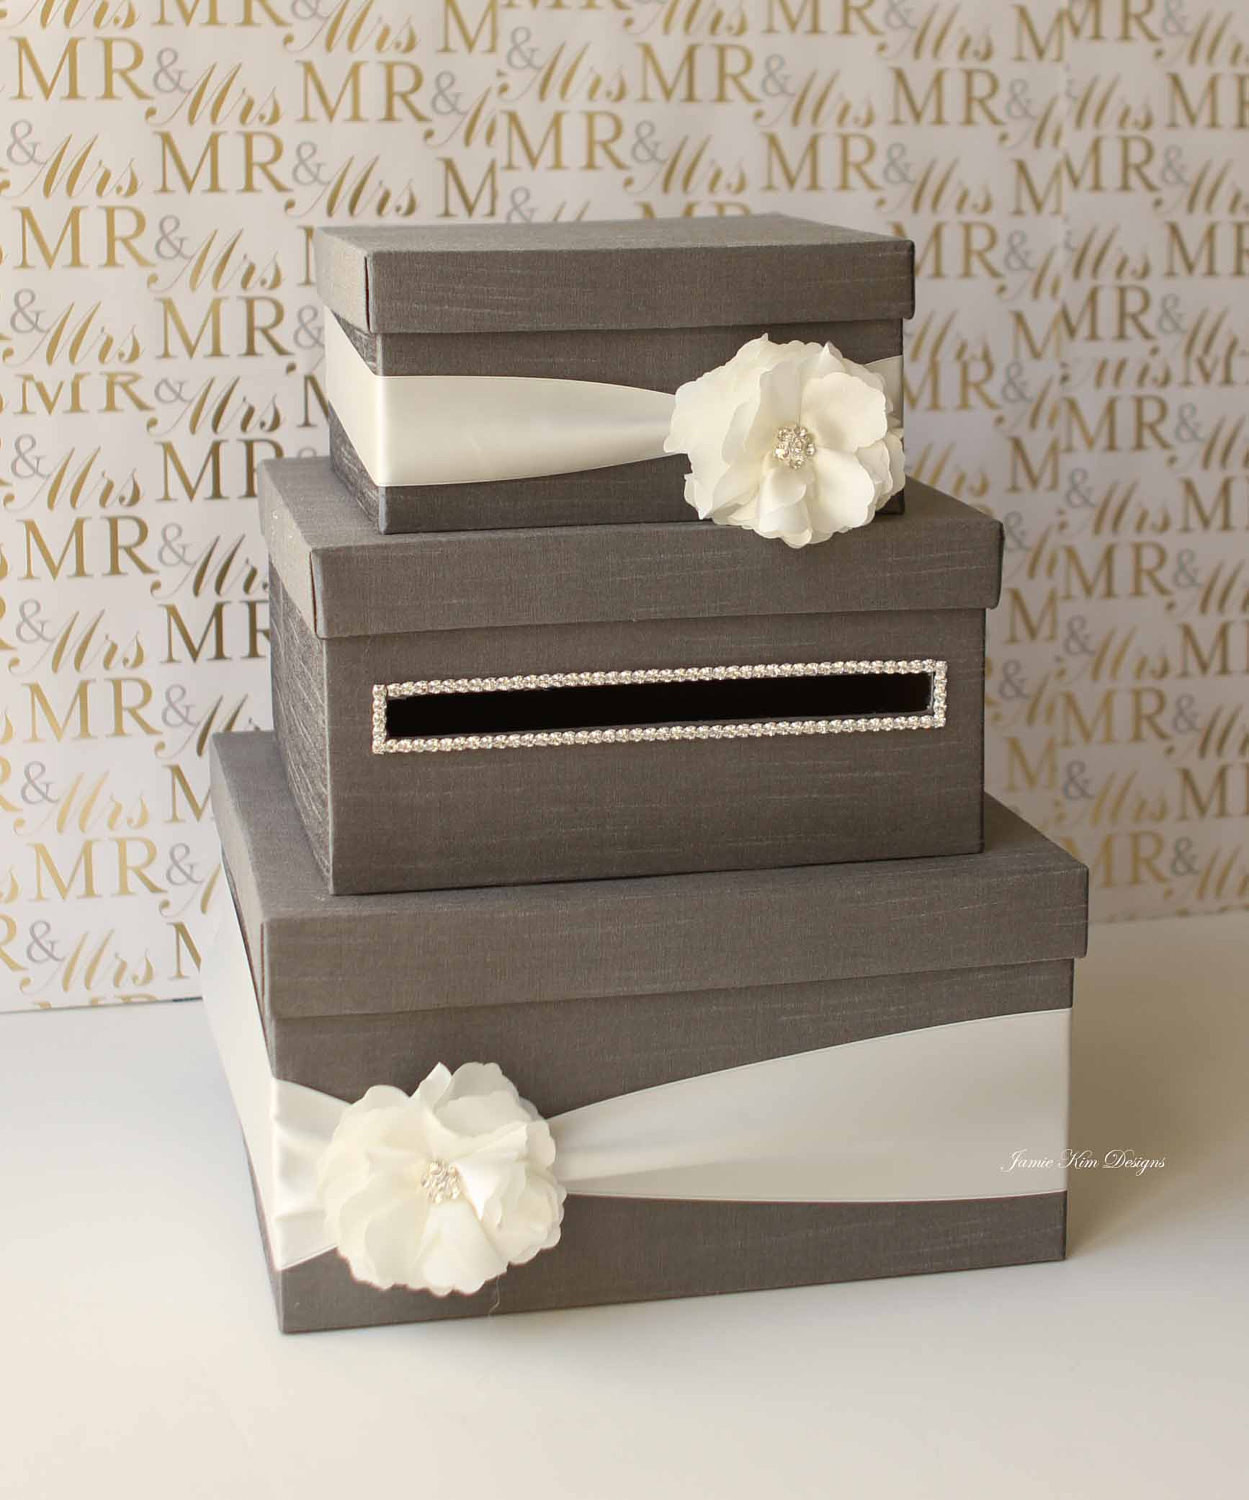 Best ideas about Wedding Gift Card Ideas . Save or Pin Wedding Card Money Box Gift Card Holder Reserved Now.